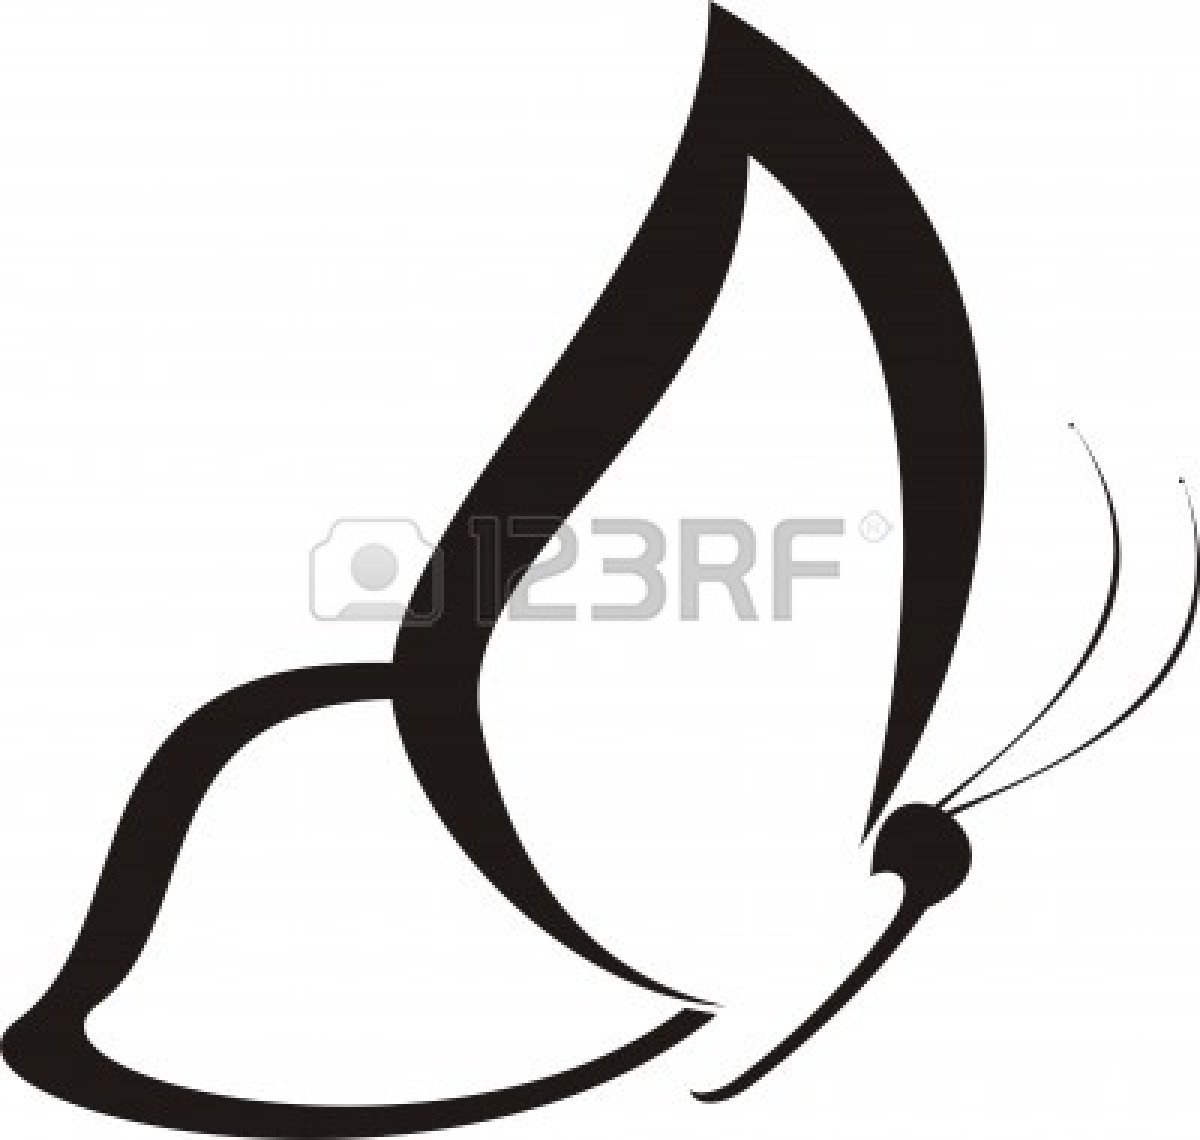 1200x1140 Images For Gt Butterfly Clip Art Outline Inspiration.